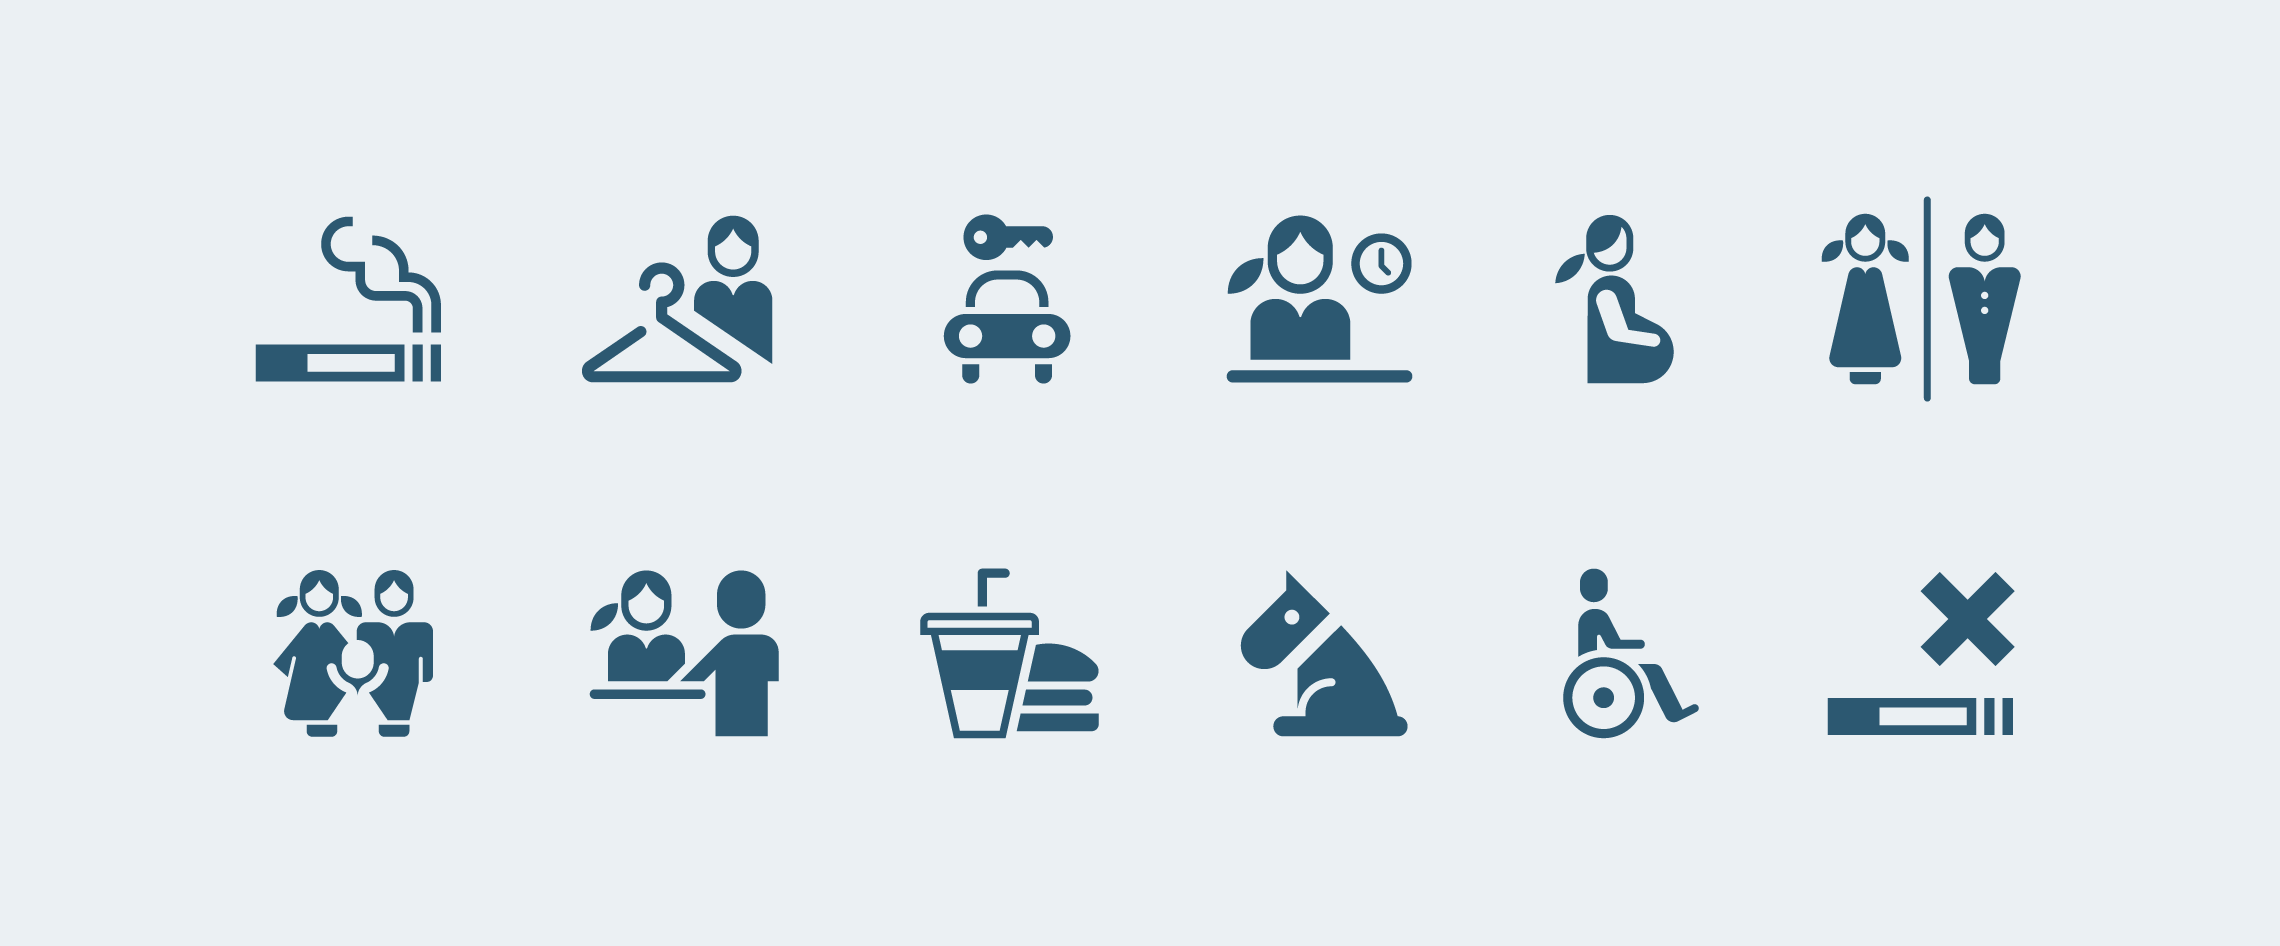 vector icons of universal icons for public buildings